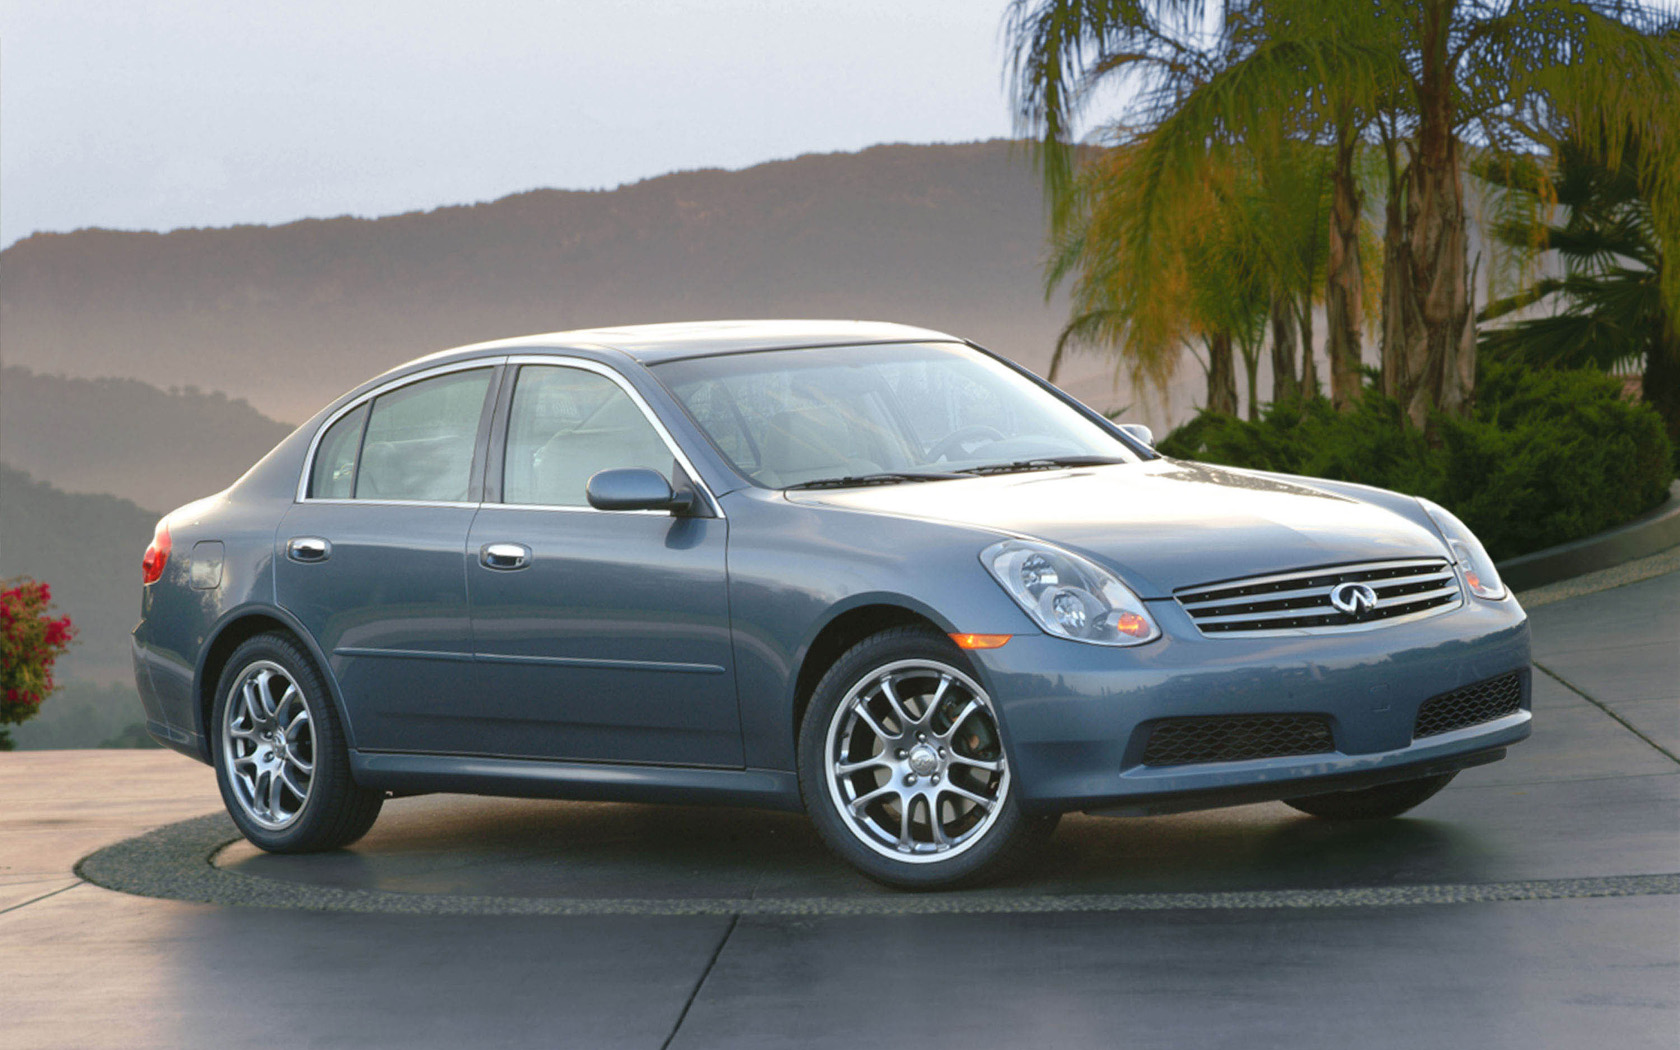 underrated ride of the week 39 05 39 06 infiniti g35 sedan. Black Bedroom Furniture Sets. Home Design Ideas